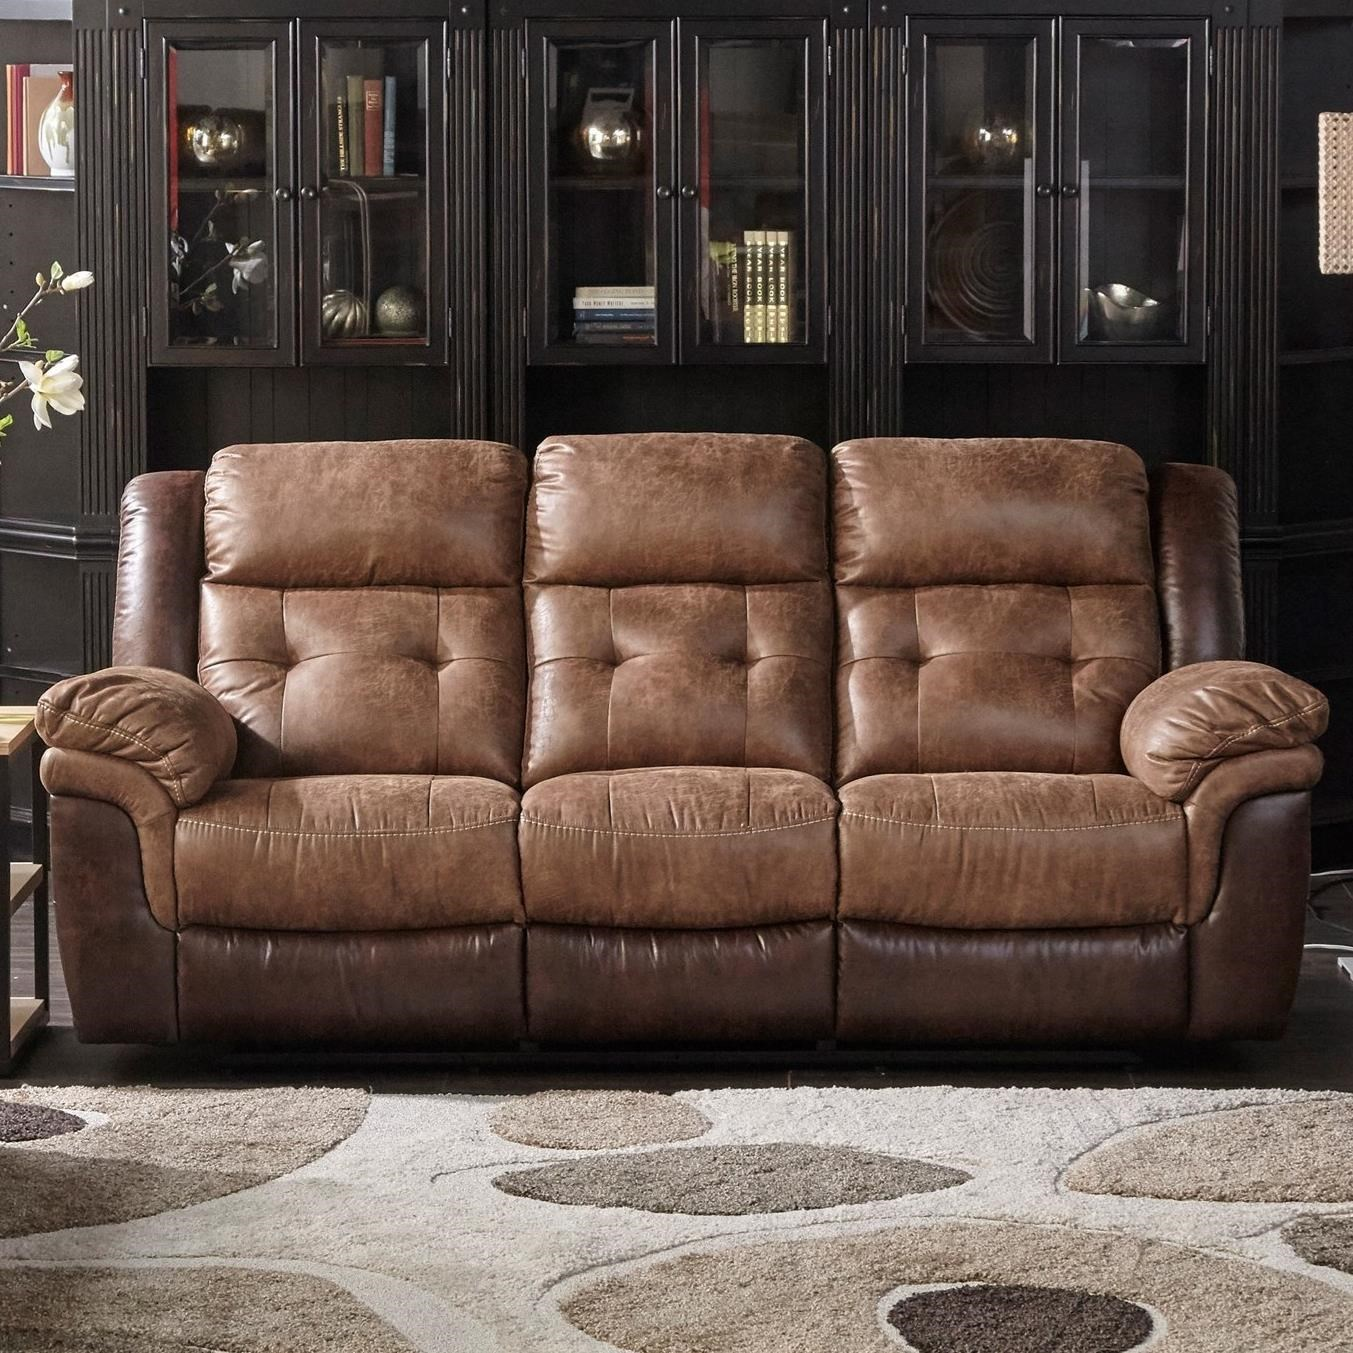 Cheers Sofa XW5156M Dual Two Tone Reclining Sofa - Great American Home Store - Reclining Sofas  sc 1 st  Great American Home Store & Cheers Sofa XW5156M Dual Two Tone Reclining Sofa - Great American ... islam-shia.org